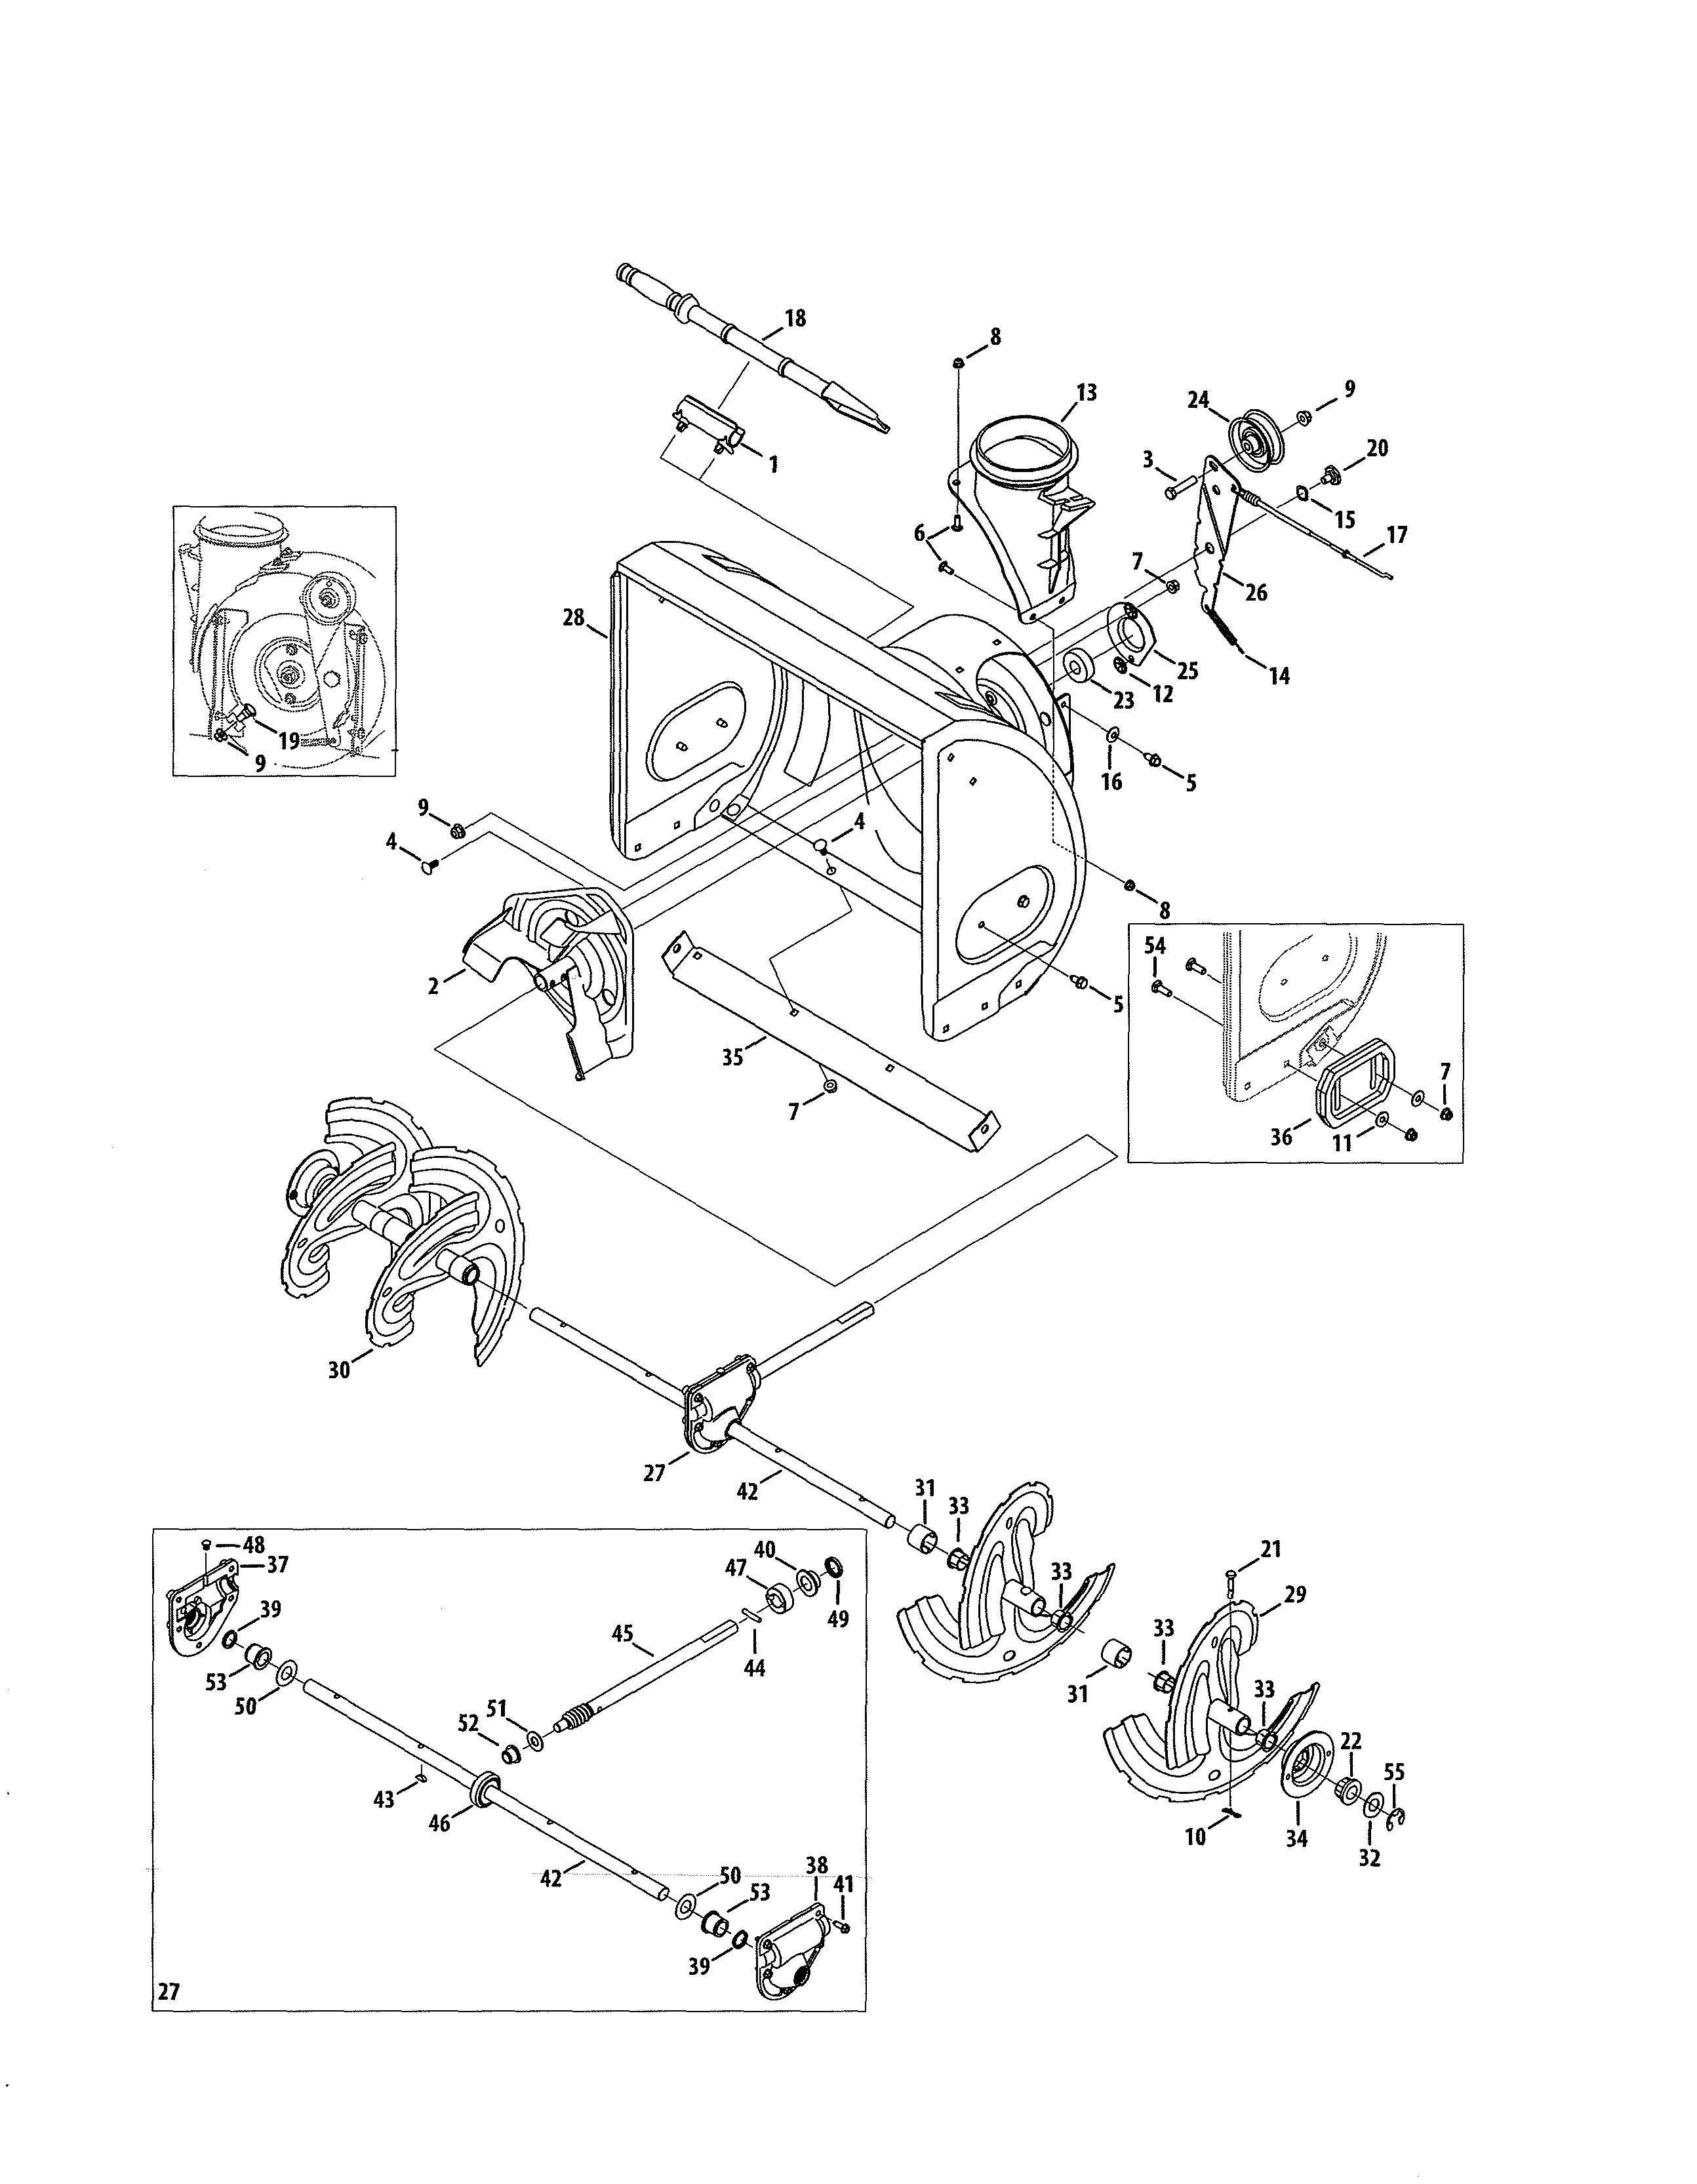 get craftsman parts and free manual for model 247 881733 gas snow blower here find [ 2588 x 3331 Pixel ]